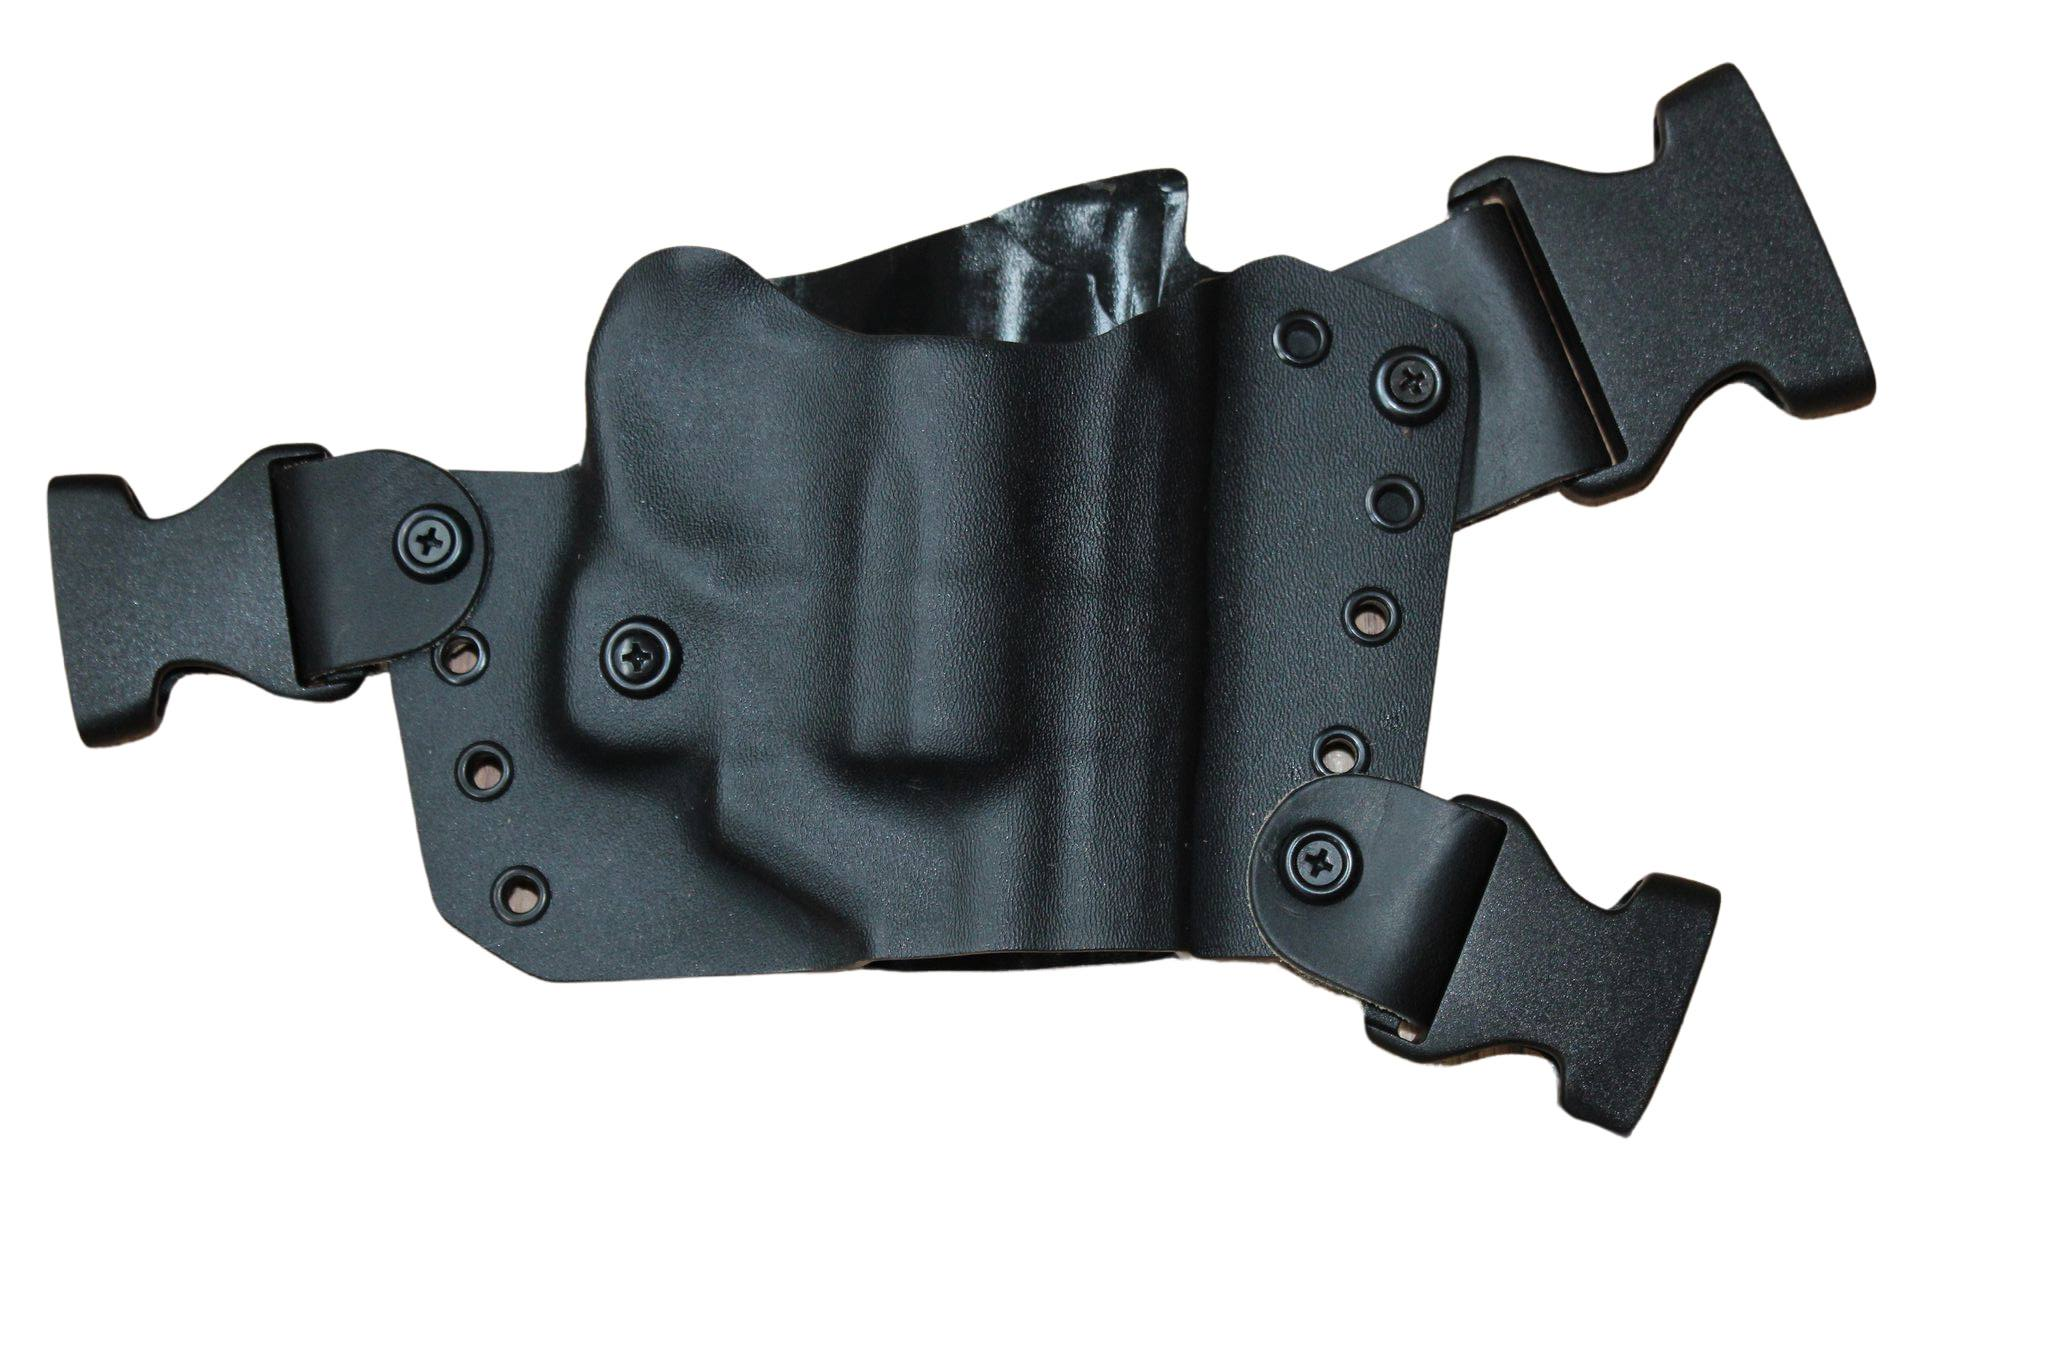 Kydex Chest Holster with Black Straps for JUDGE